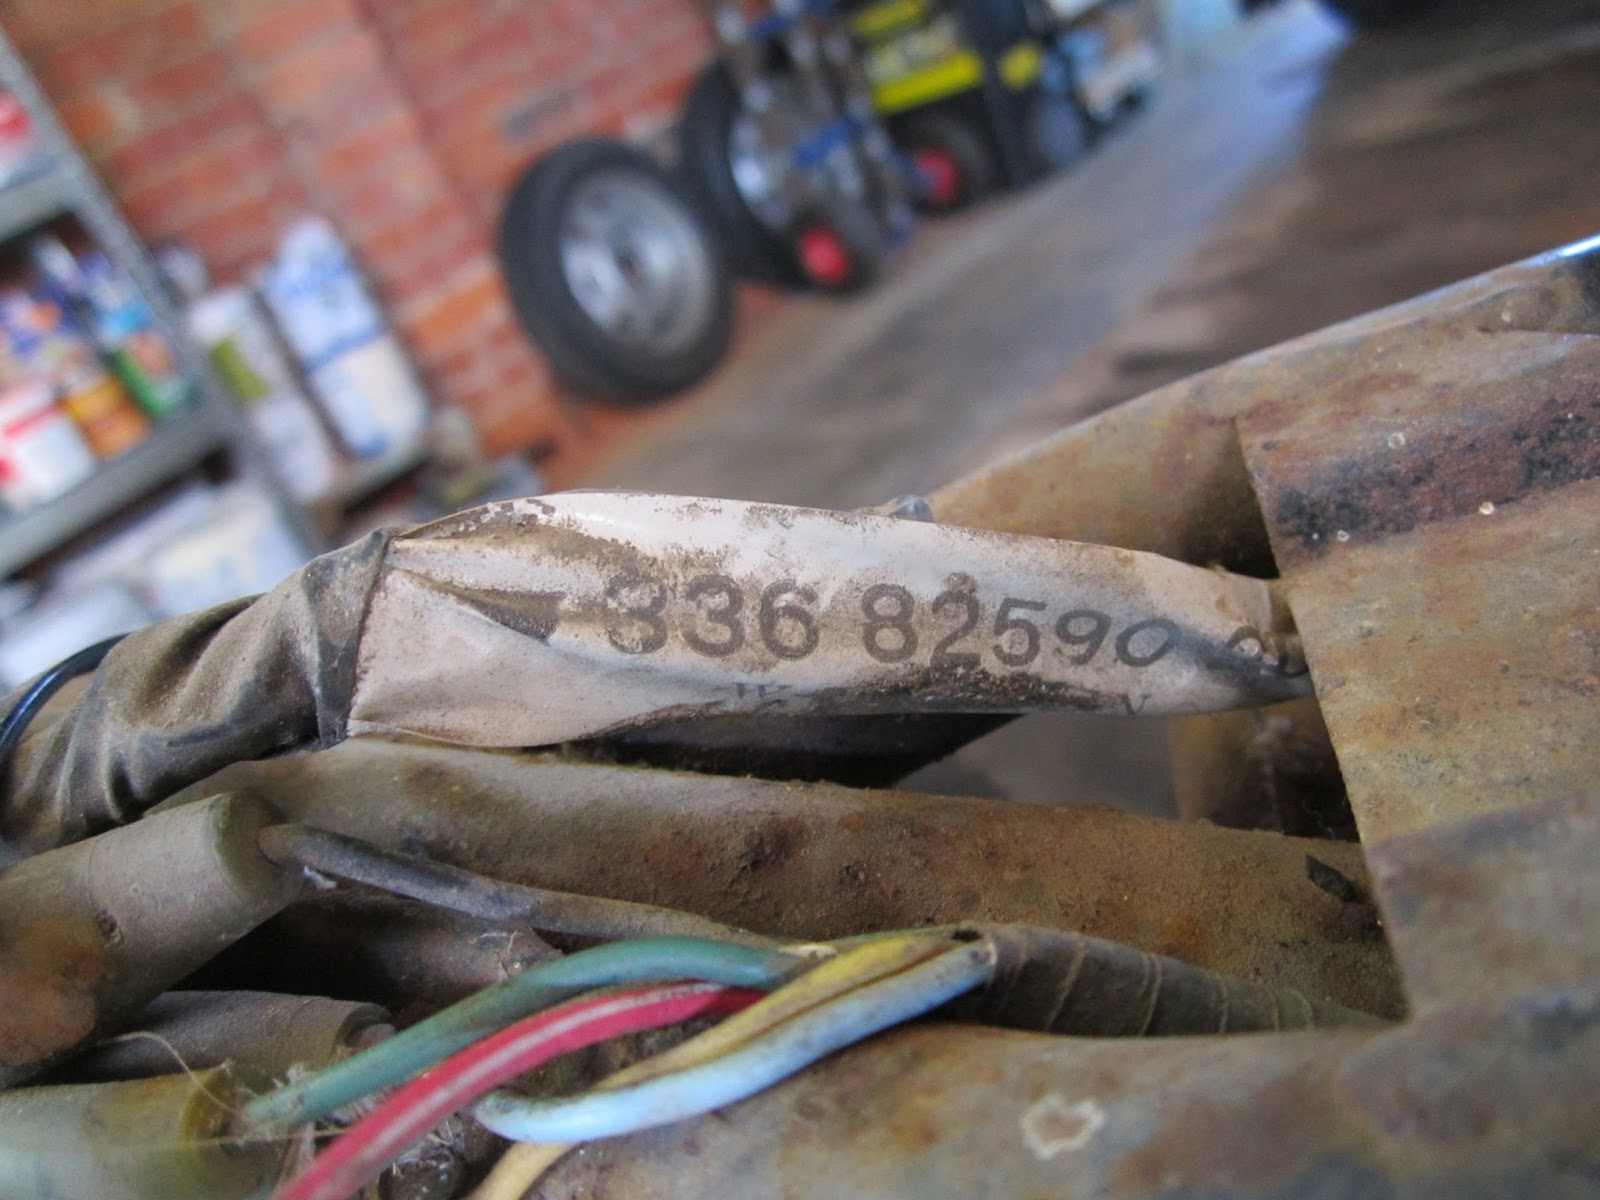 Restoration Yamaha Ls3 1972 Rebuilding Chassis Wire Harness Tags Part Number Tag Still On The Original Wiring